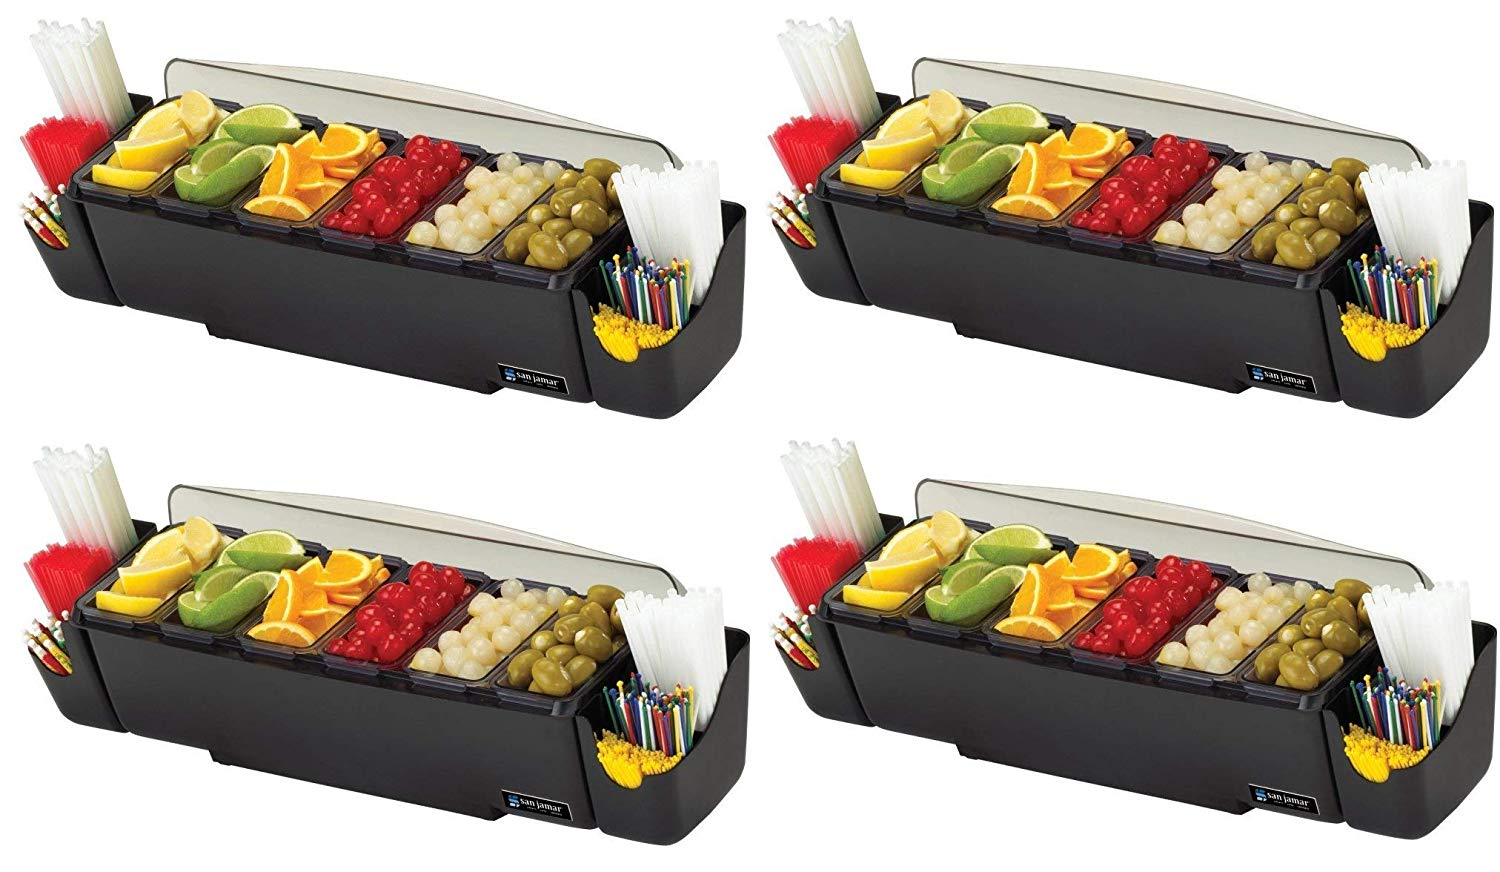 "San Jamar BD4006S 10 Piece The Dome Garnish Center, 3qt Capacity, 22"" Length x 7-1/2"" Width x 8-1/2"" Height (4-(Pack))"